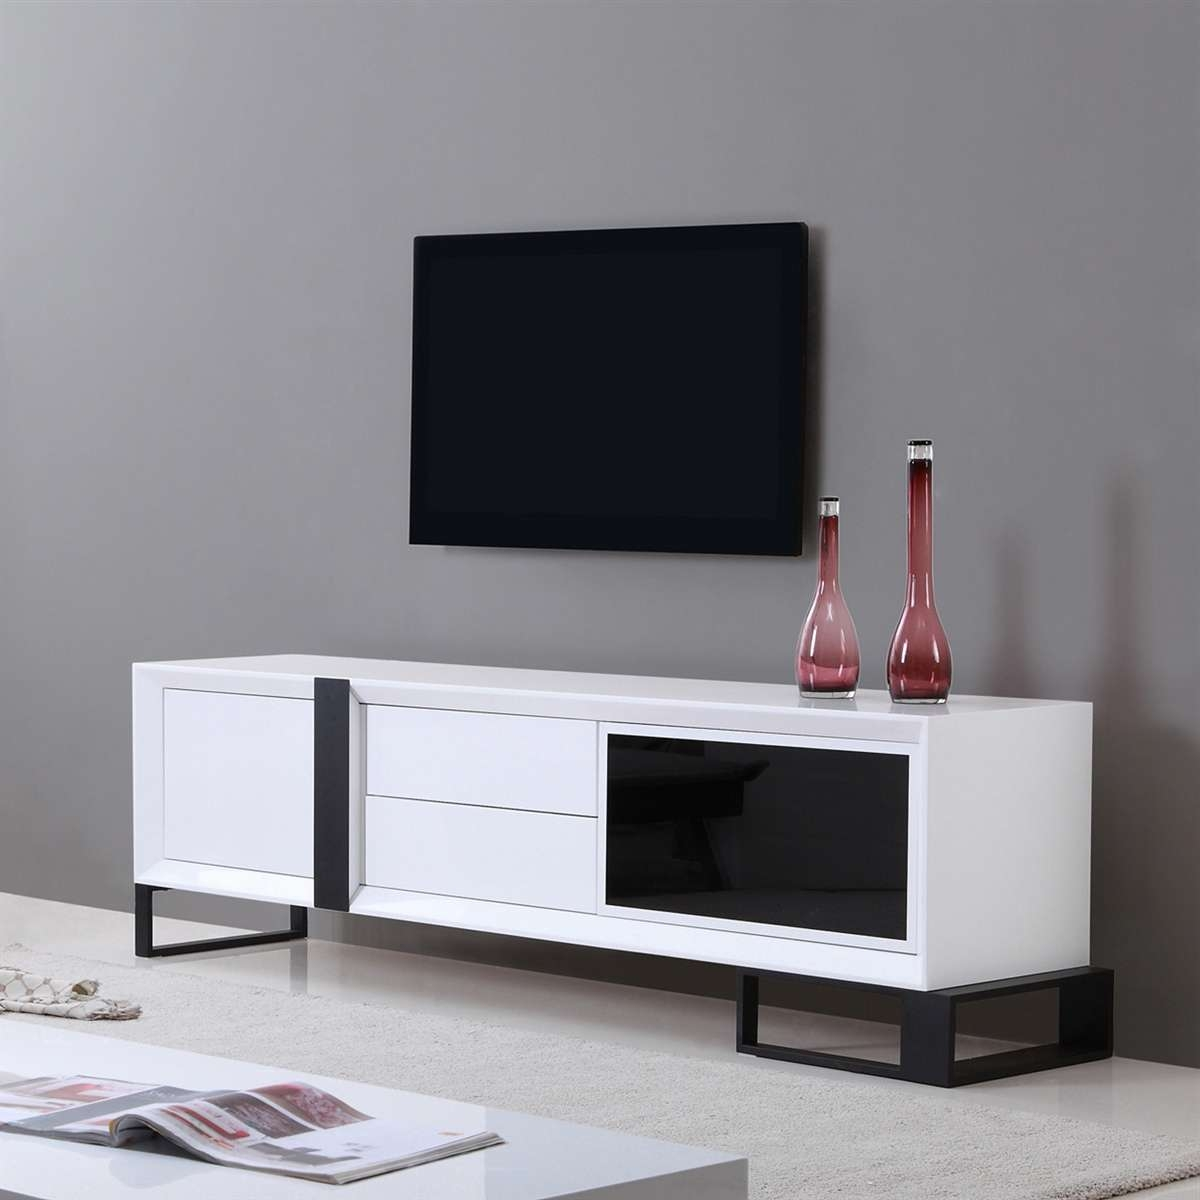 All Modern Tv Stand | Home Design Ideas For All Modern Tv Stands (View 1 of 20)